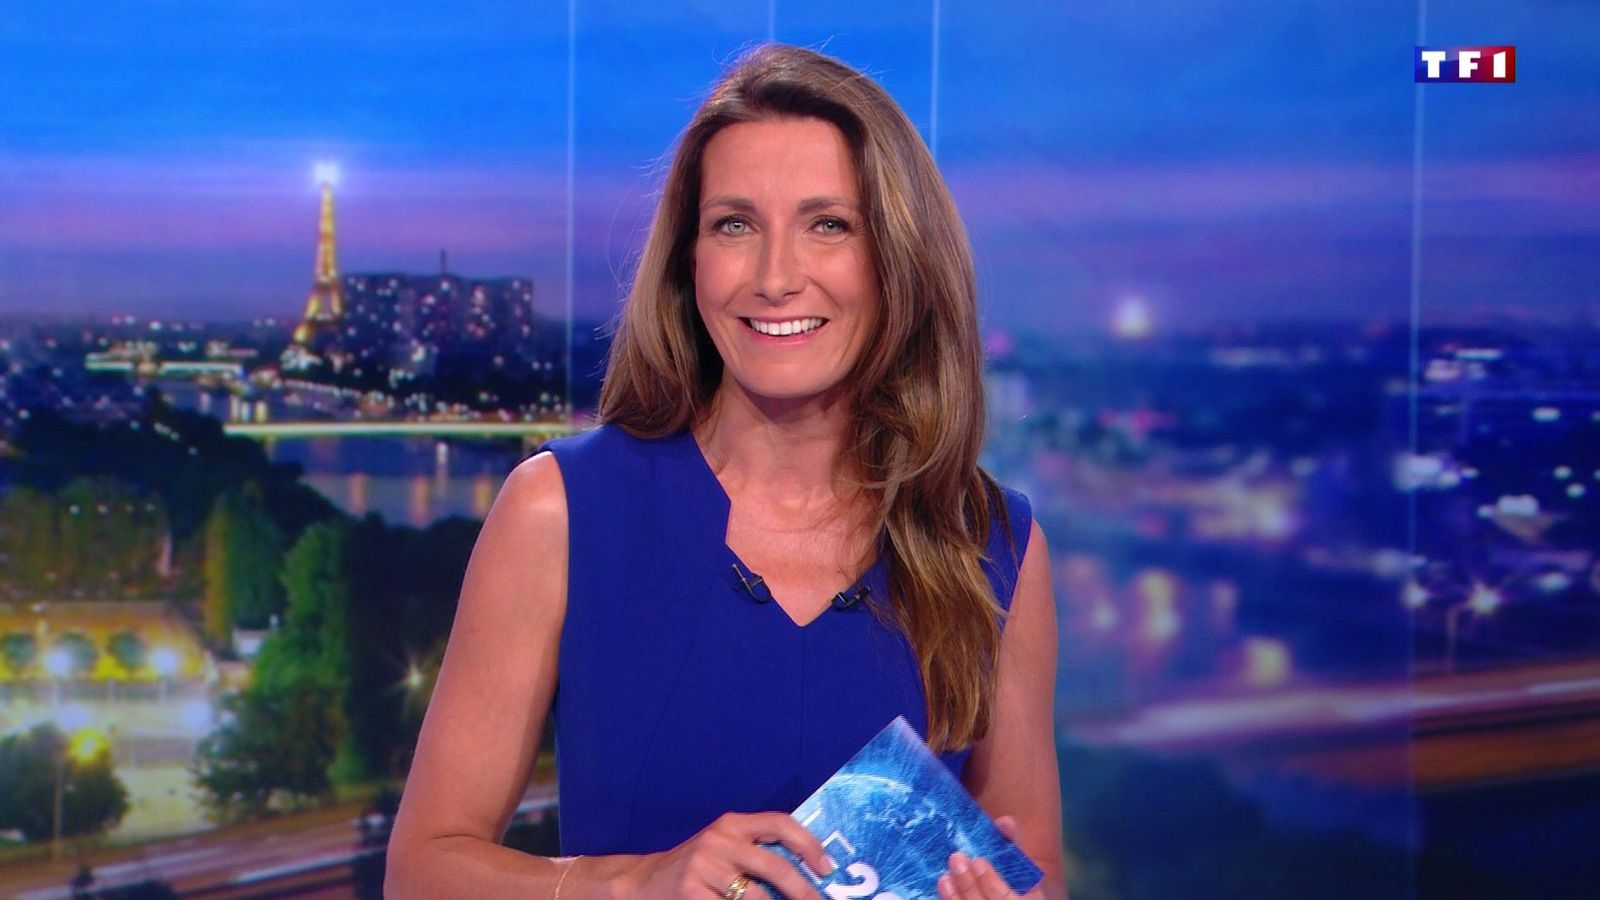 📸24 ANNE-CLAIRE COUDRAY @ACCoudray @TF1 @TF1LeJT pour LE 20H WEEK-END #vuesalatele